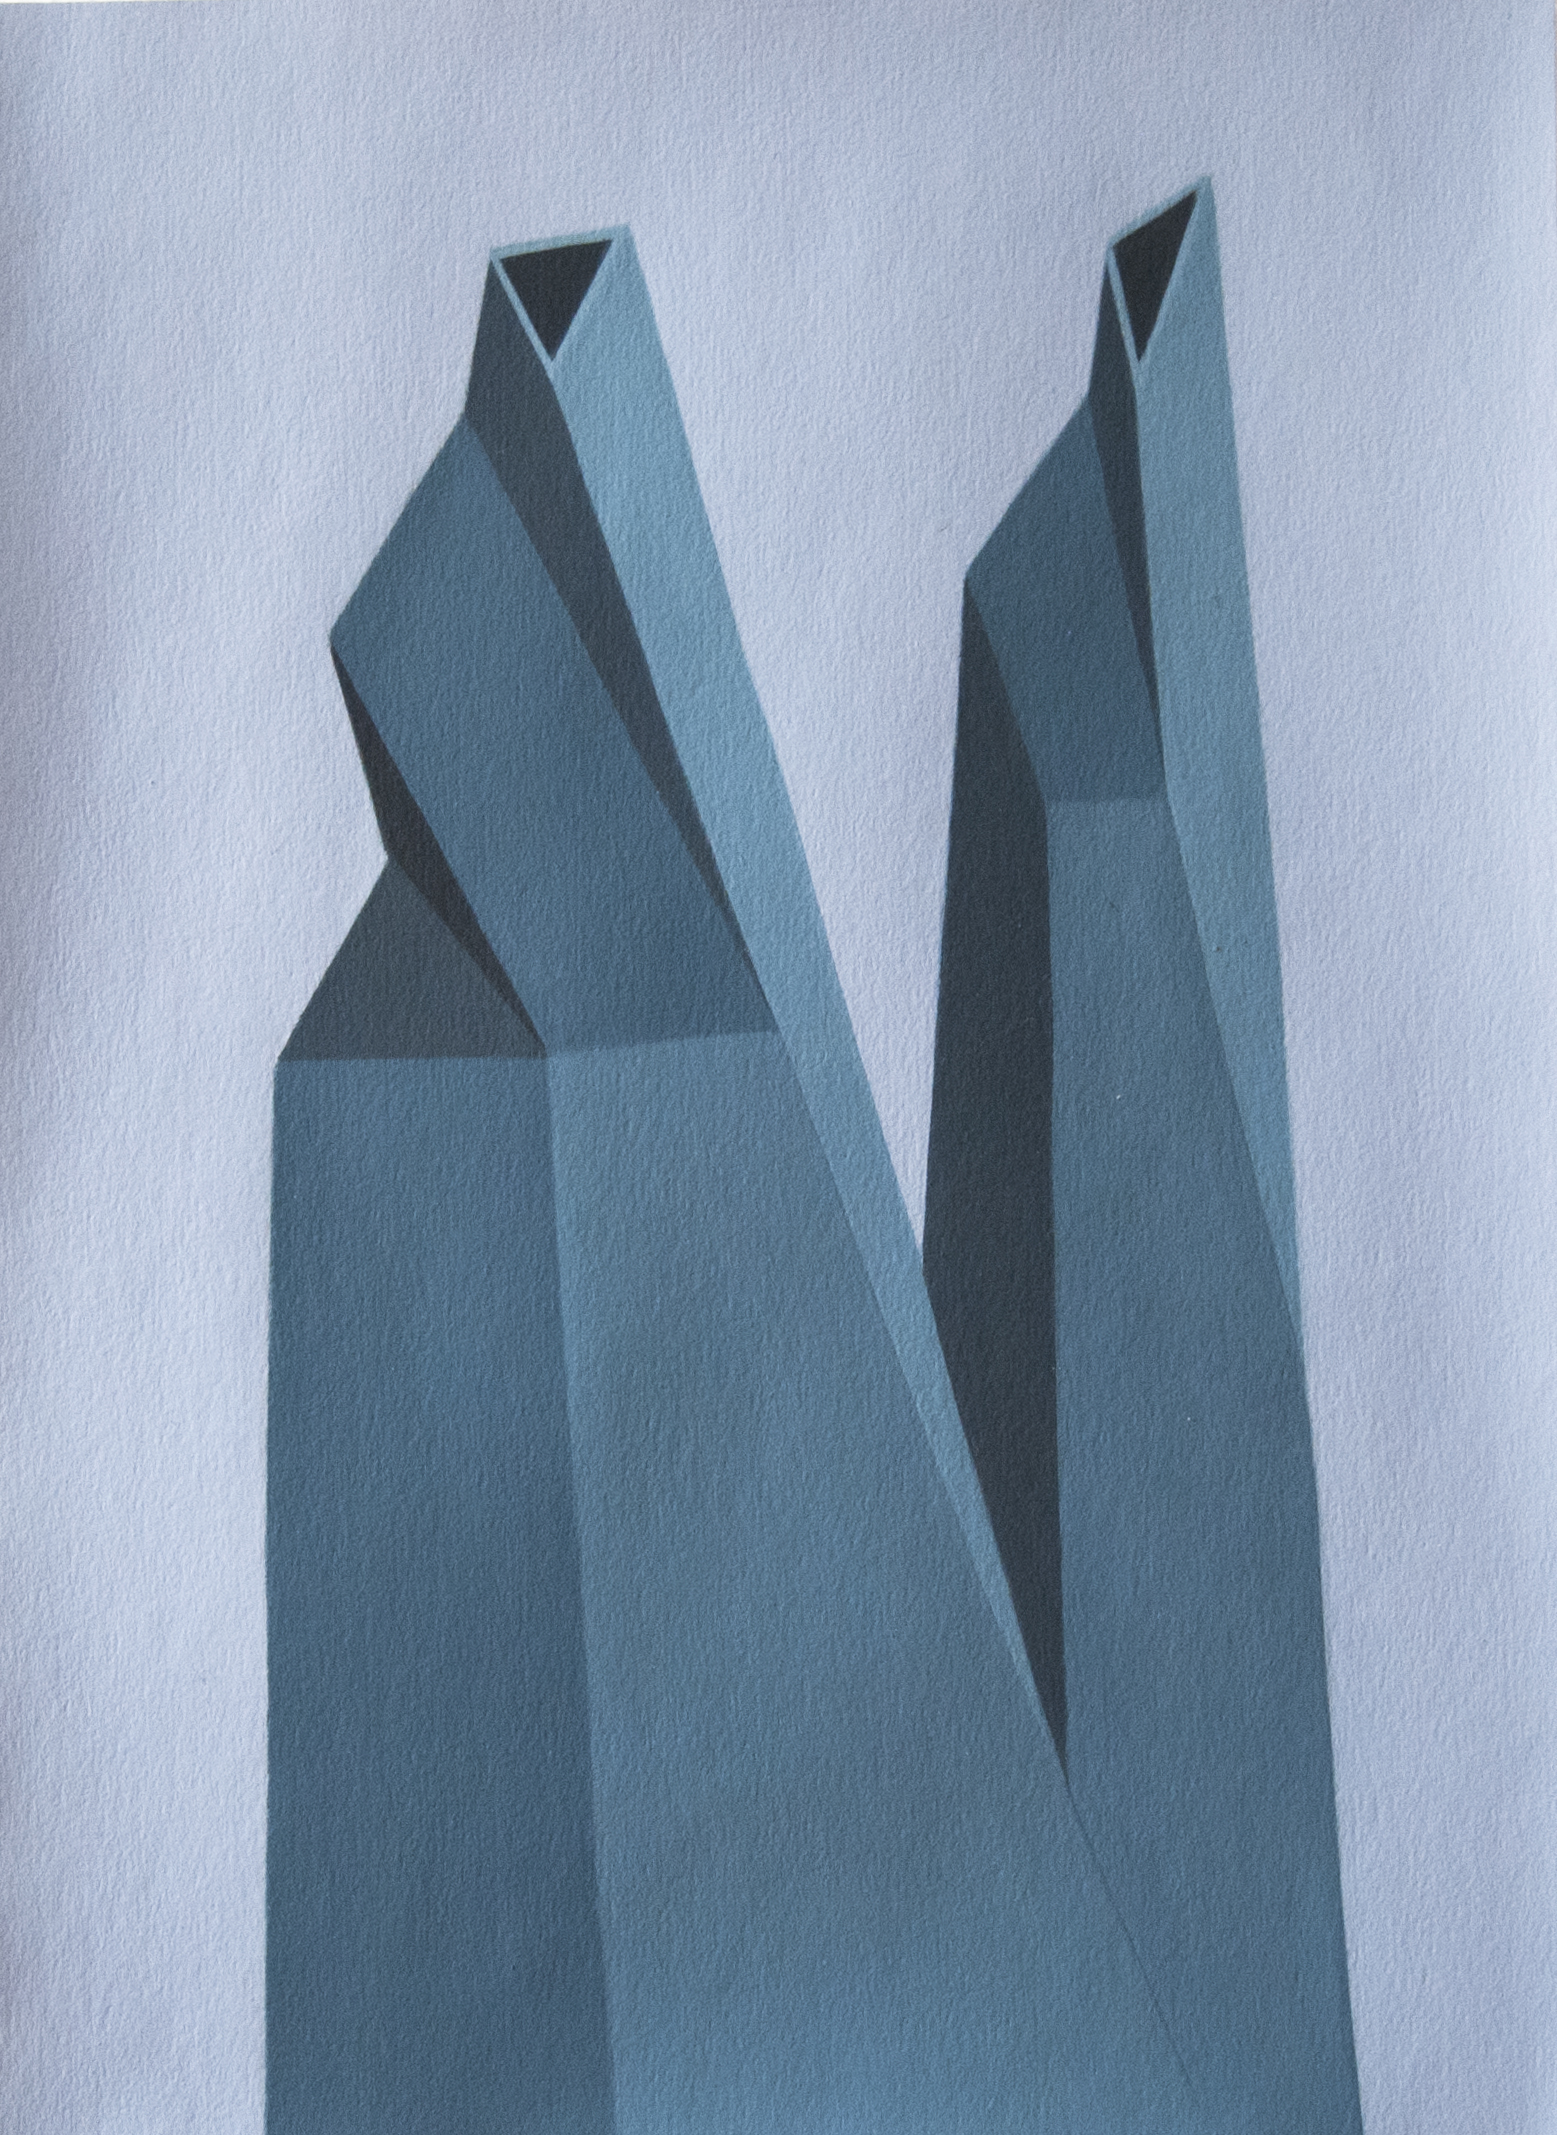 Geometric painting on paper By Roberto Chessa